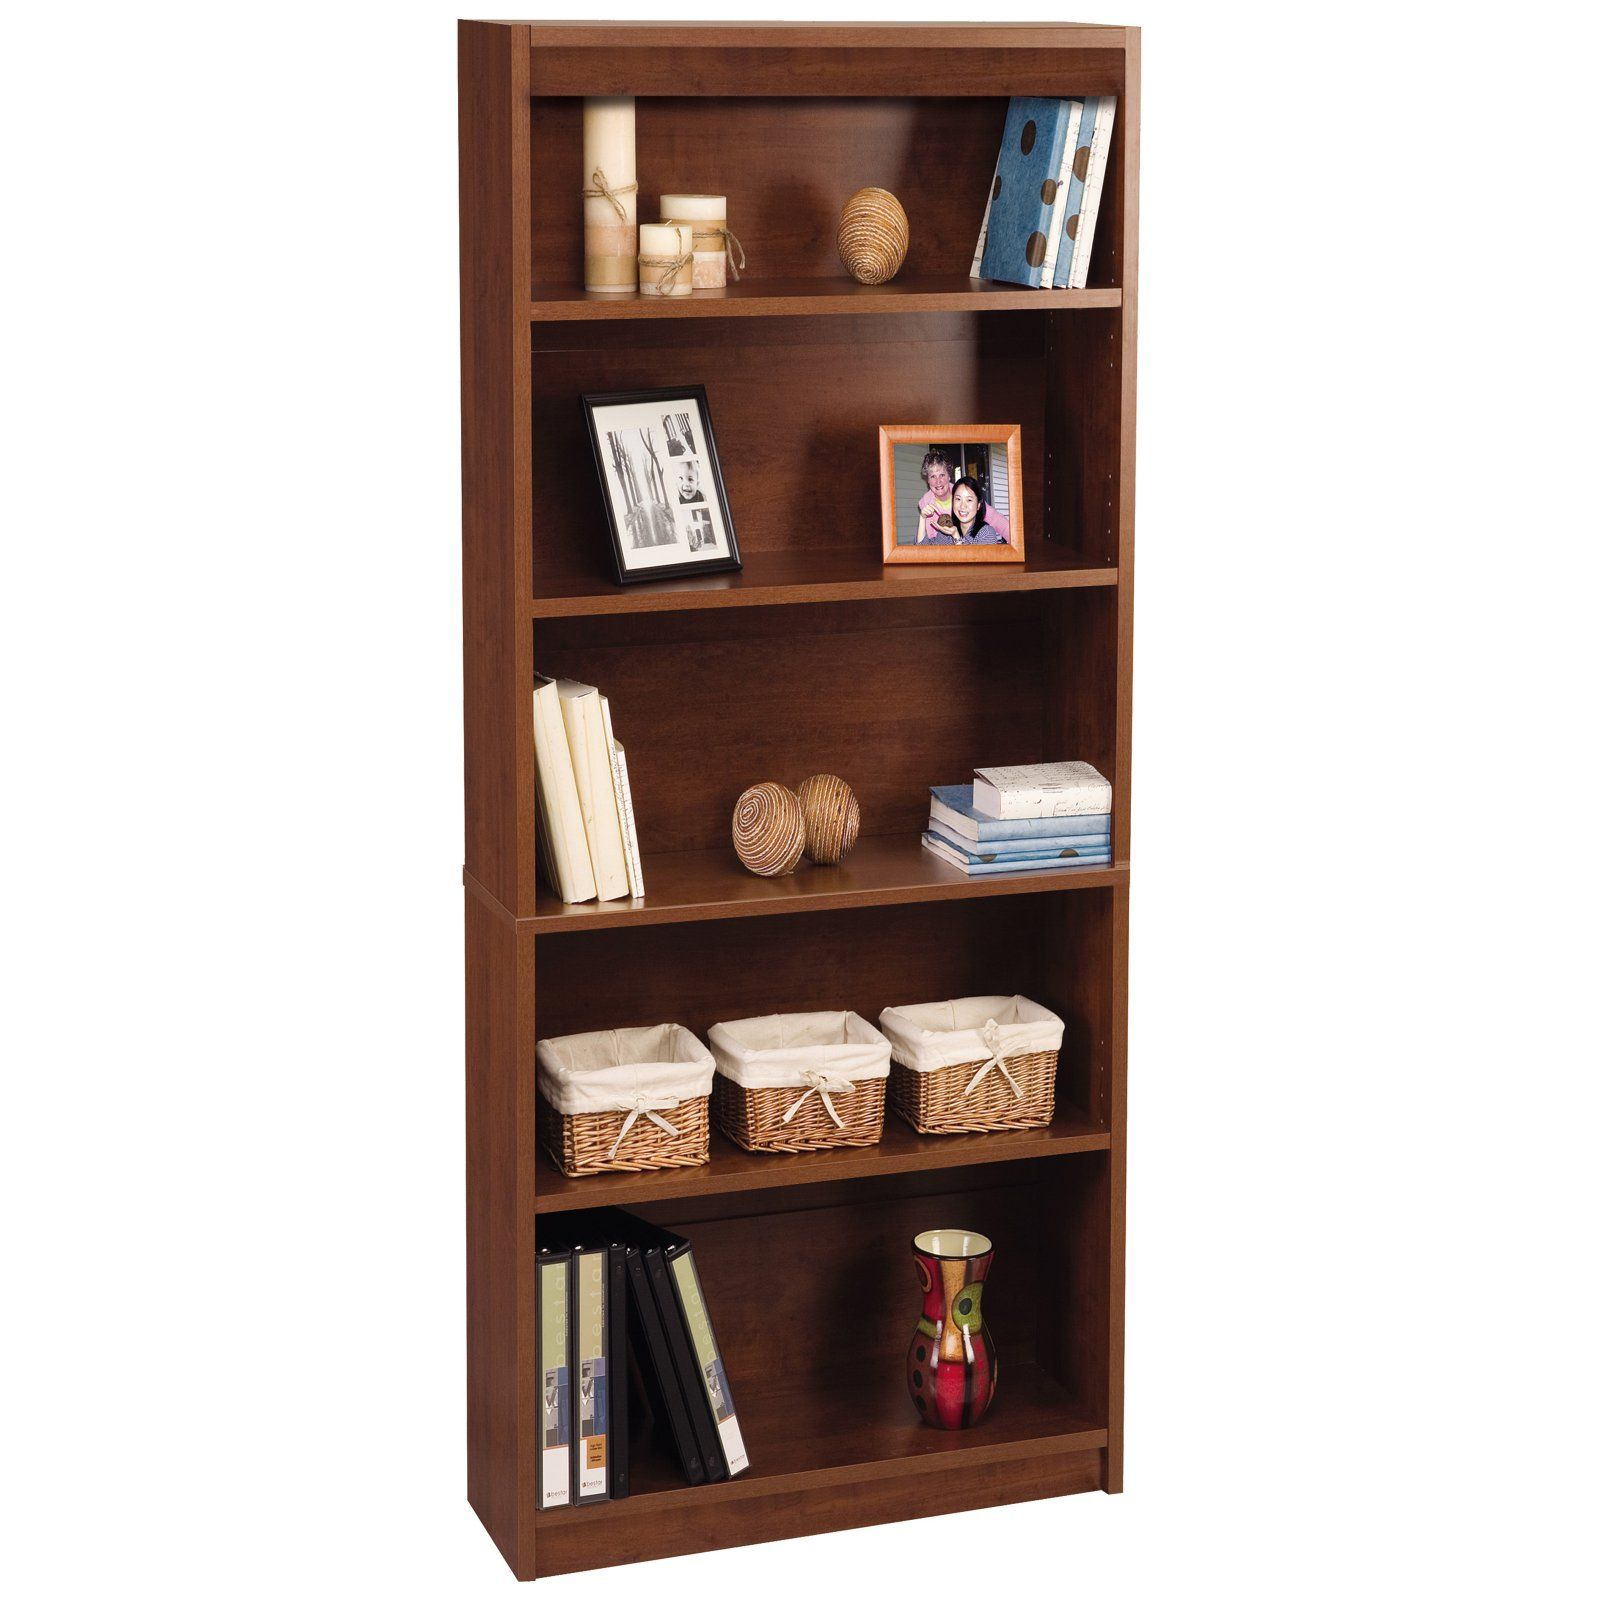 d6d11baa30cb0492cf1c2b6f20747902 - Better Homes And Gardens Crossmill 5 Shelf Bookcase Multiple Finishes